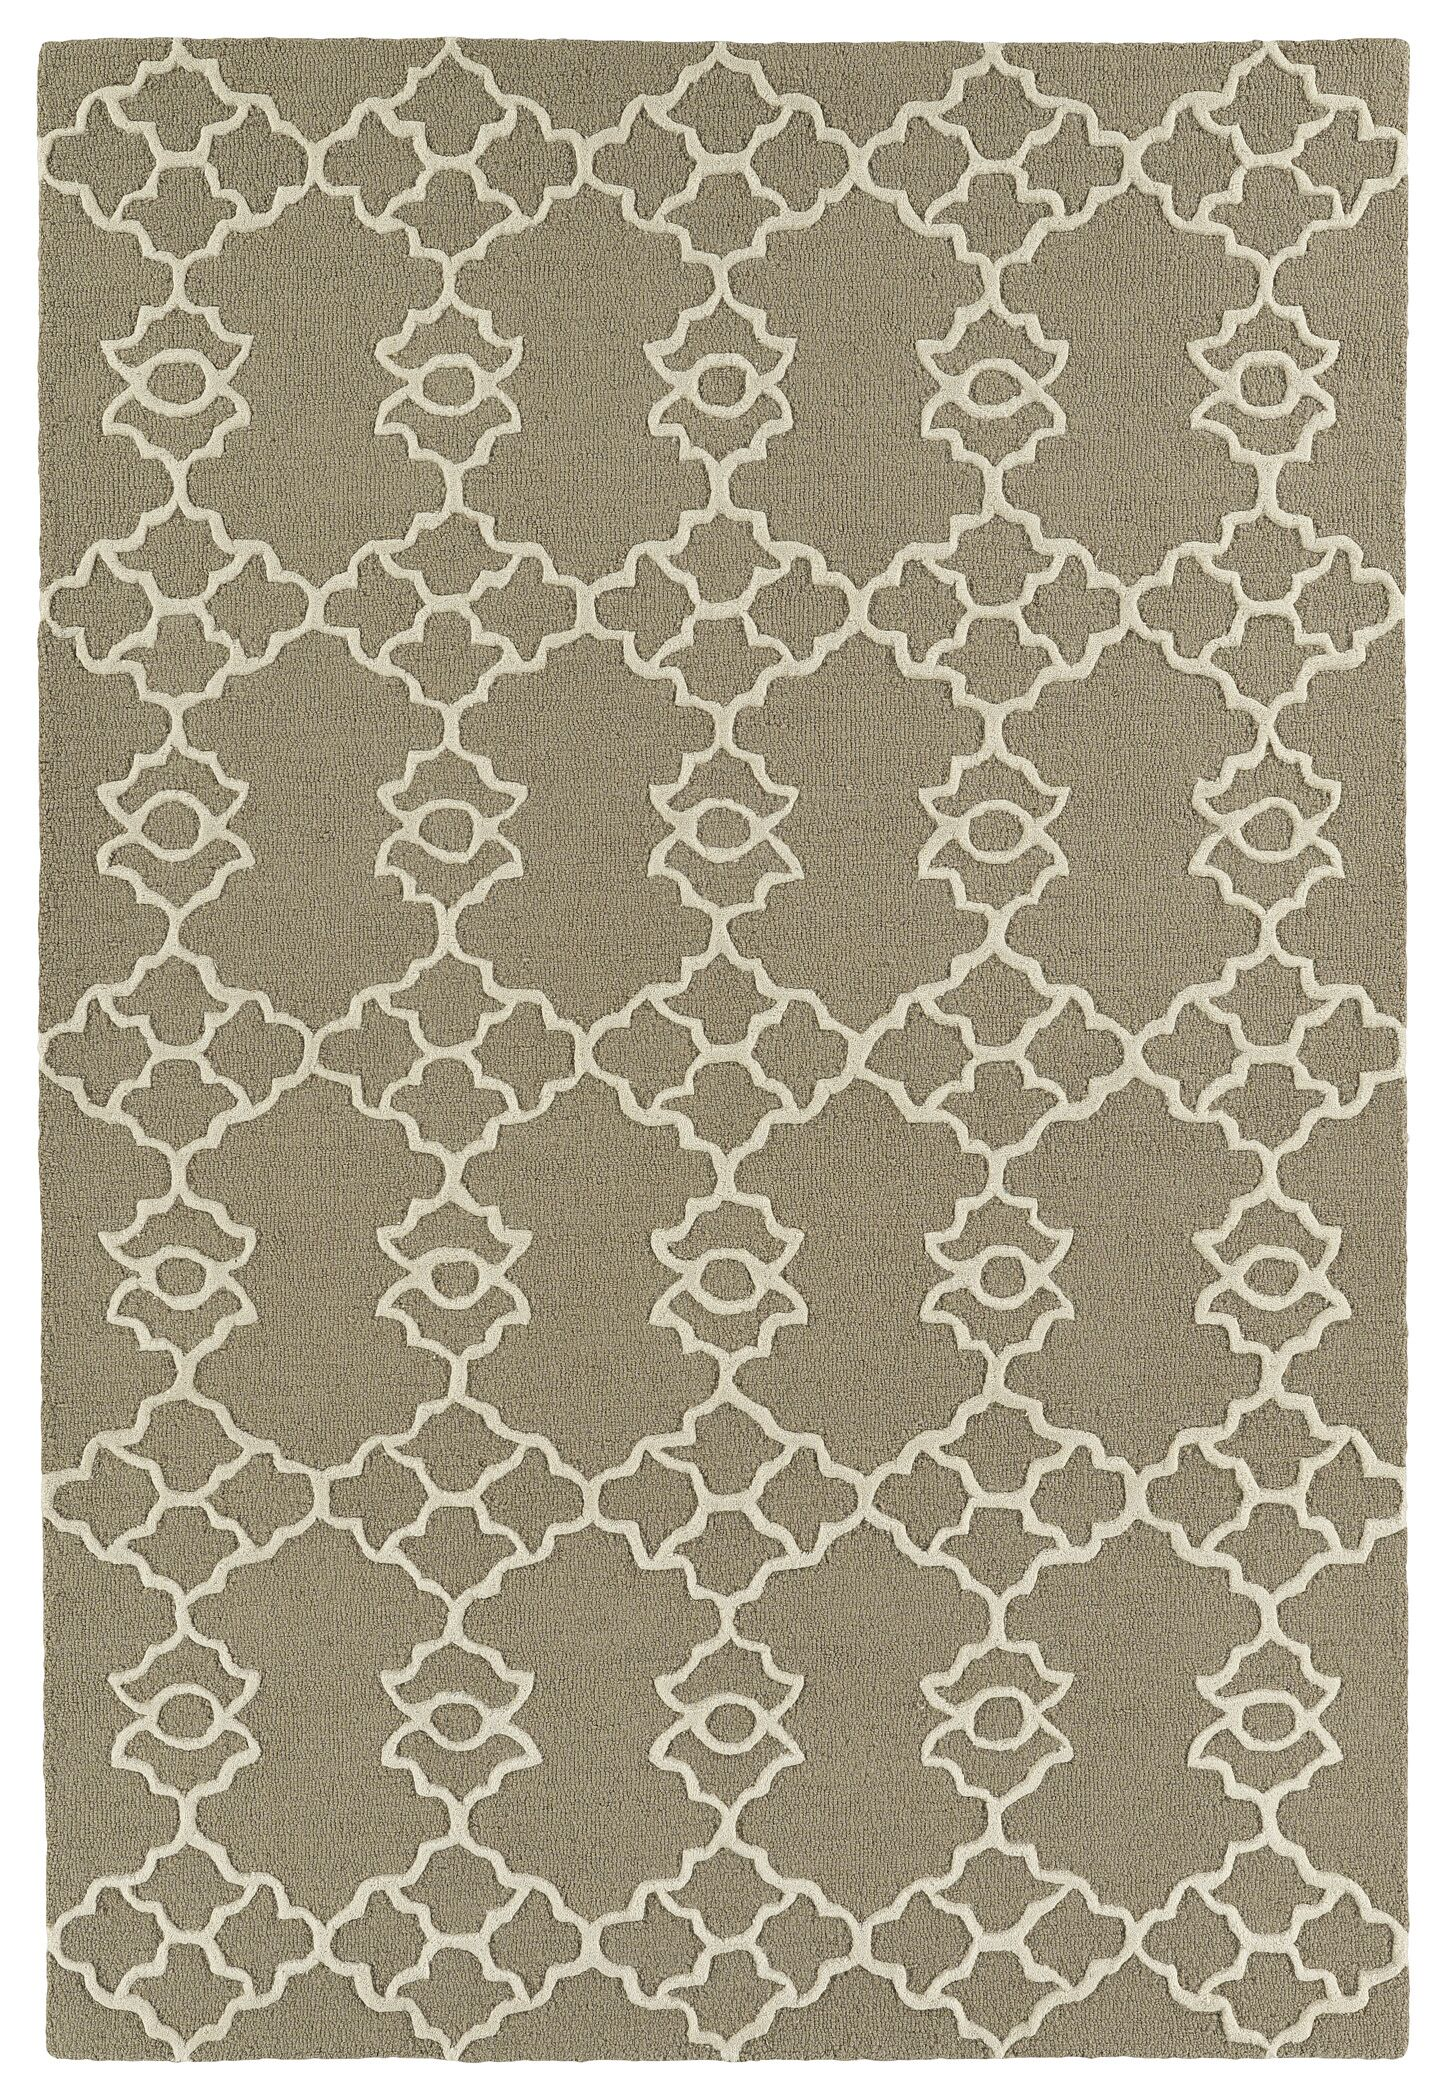 Bryant Handmade Light Brown Area Rug Rug Size: Rectangle 5' x 7'